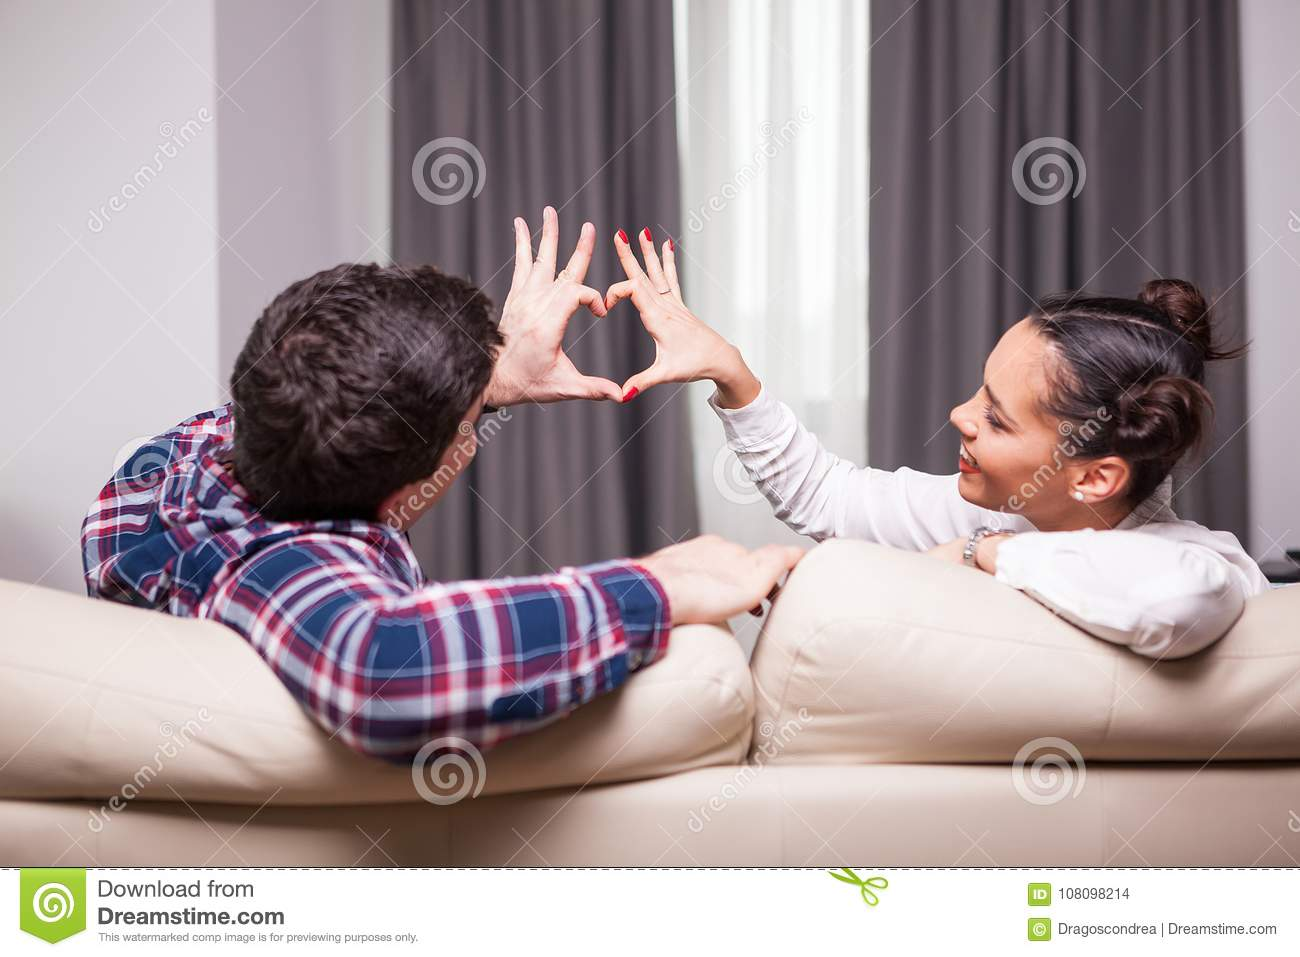 Beautiful couple making a heart shape from their fingers